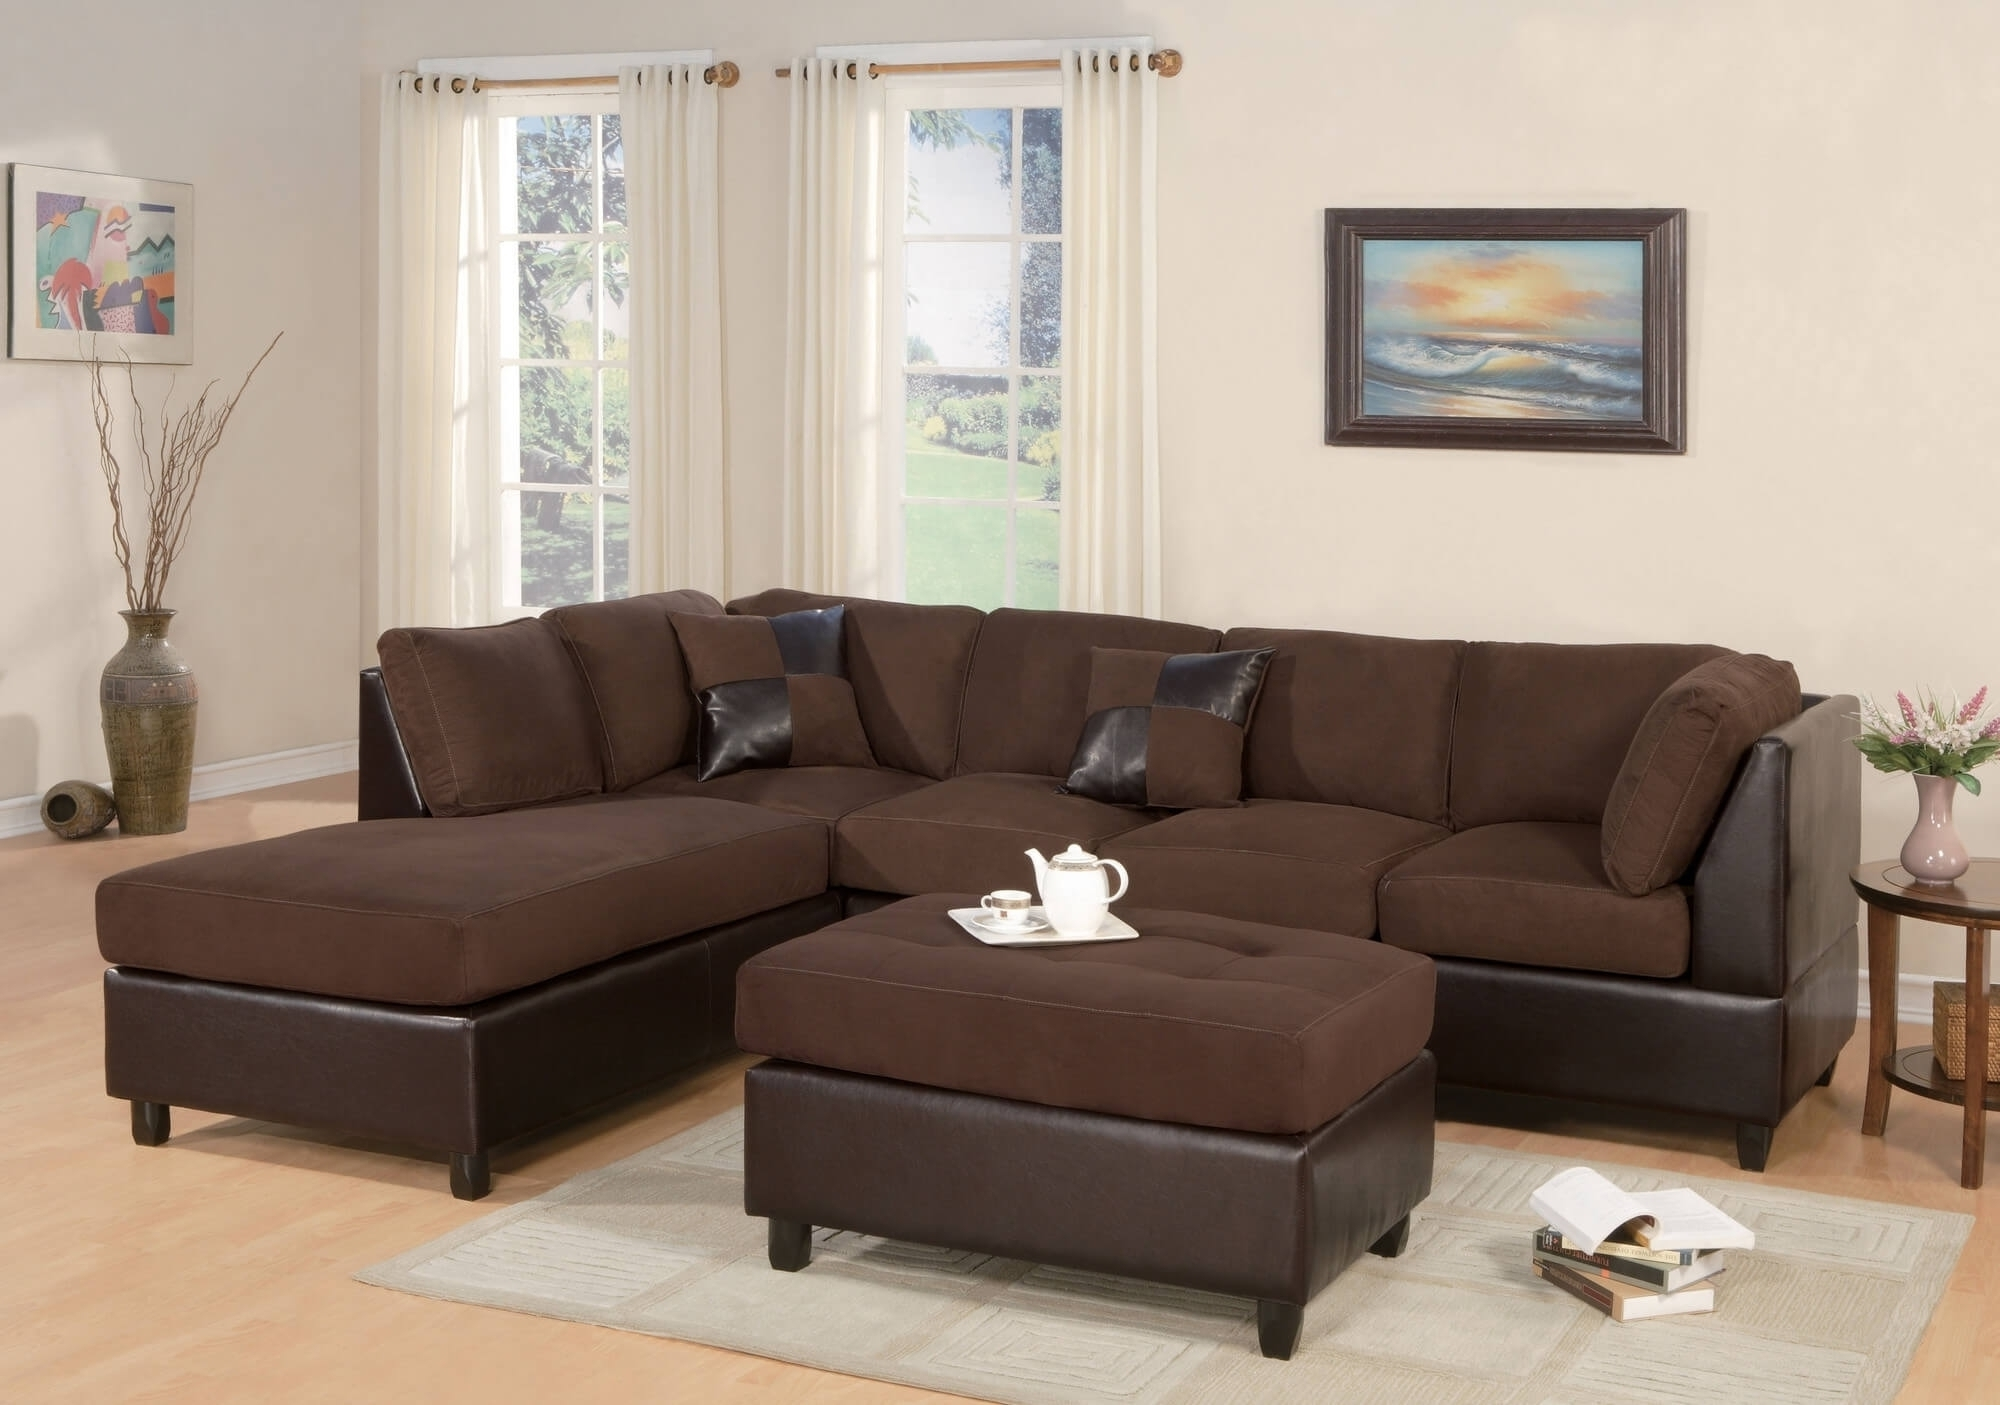 Widely Used Photos Sectional Sofas Under $1000 – Buildsimplehome Regarding Sectional Sofas Under  (View 15 of 15)